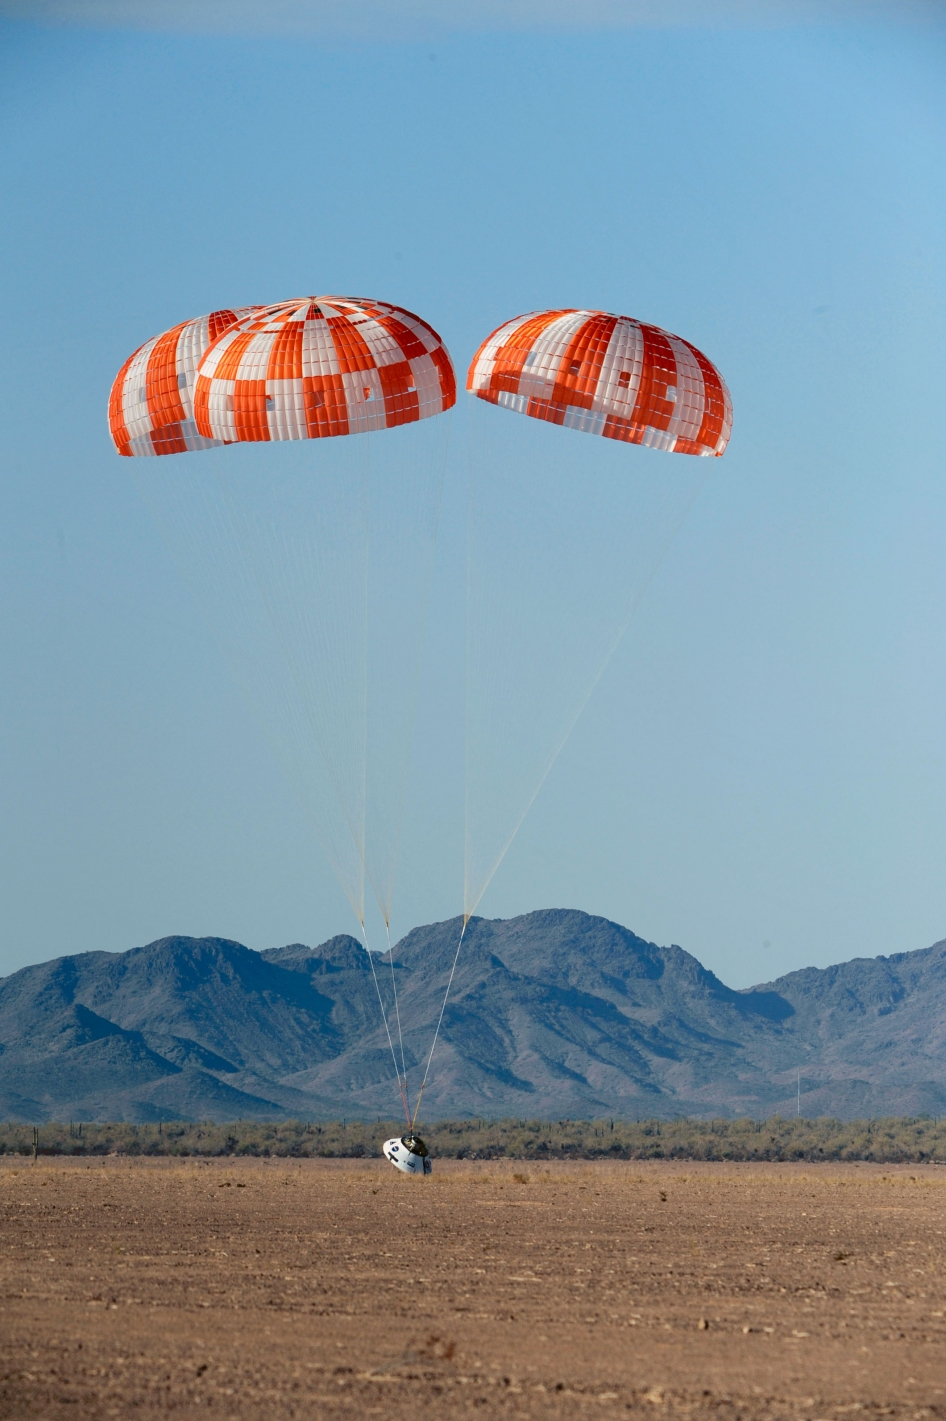 Orion Parachute Test, July 18